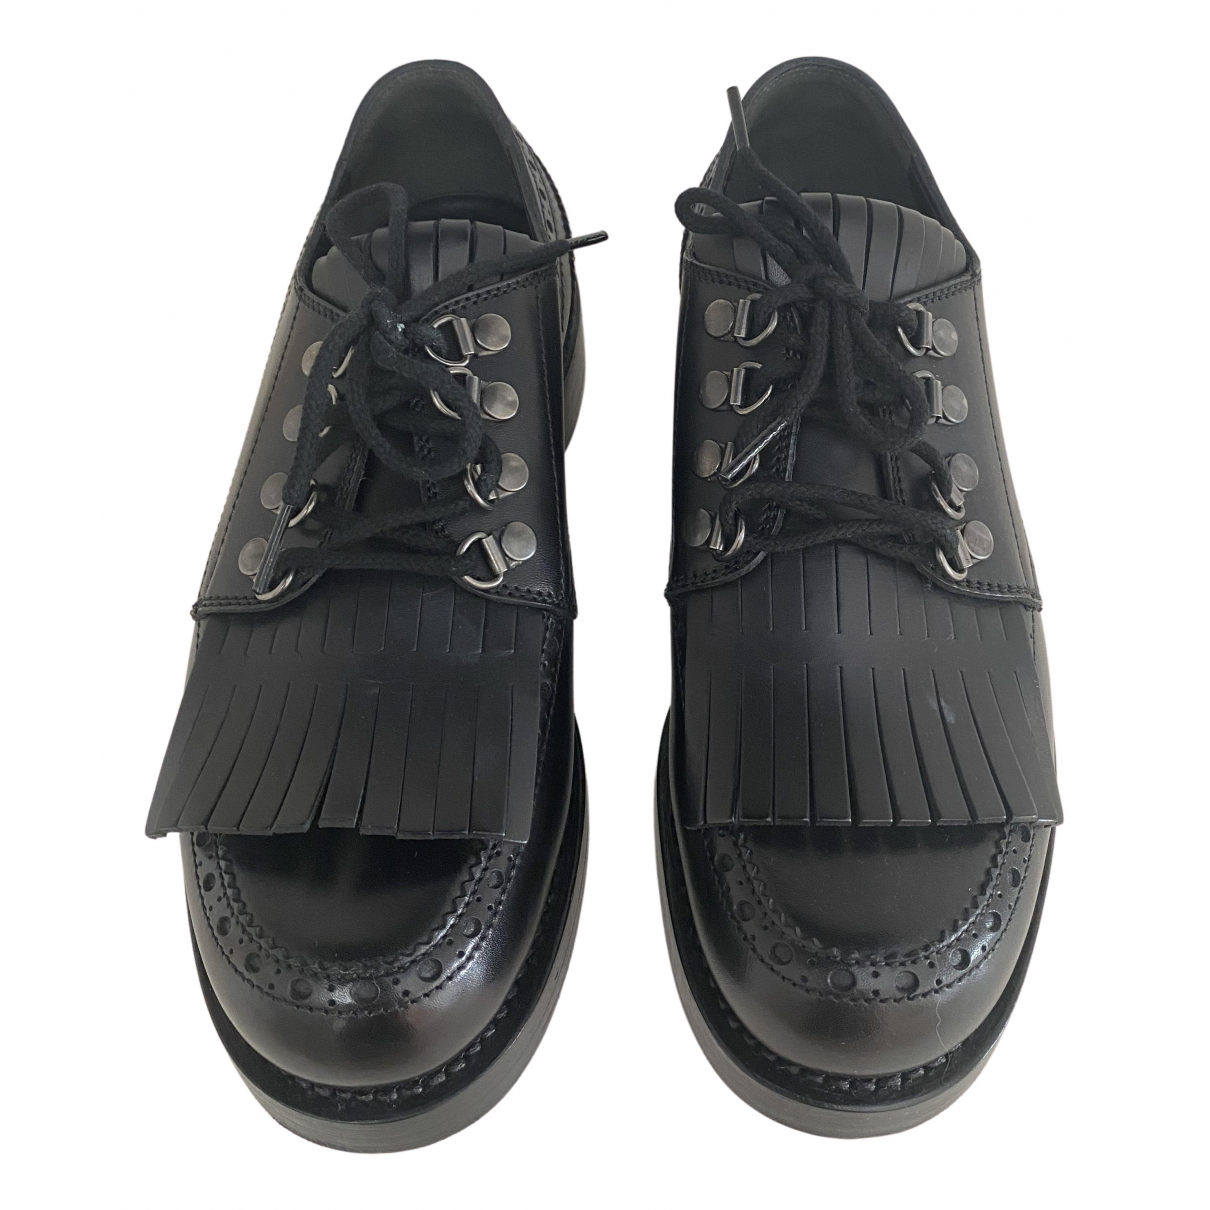 Gucci \N Black Leather Lace ups for Men 5 UK